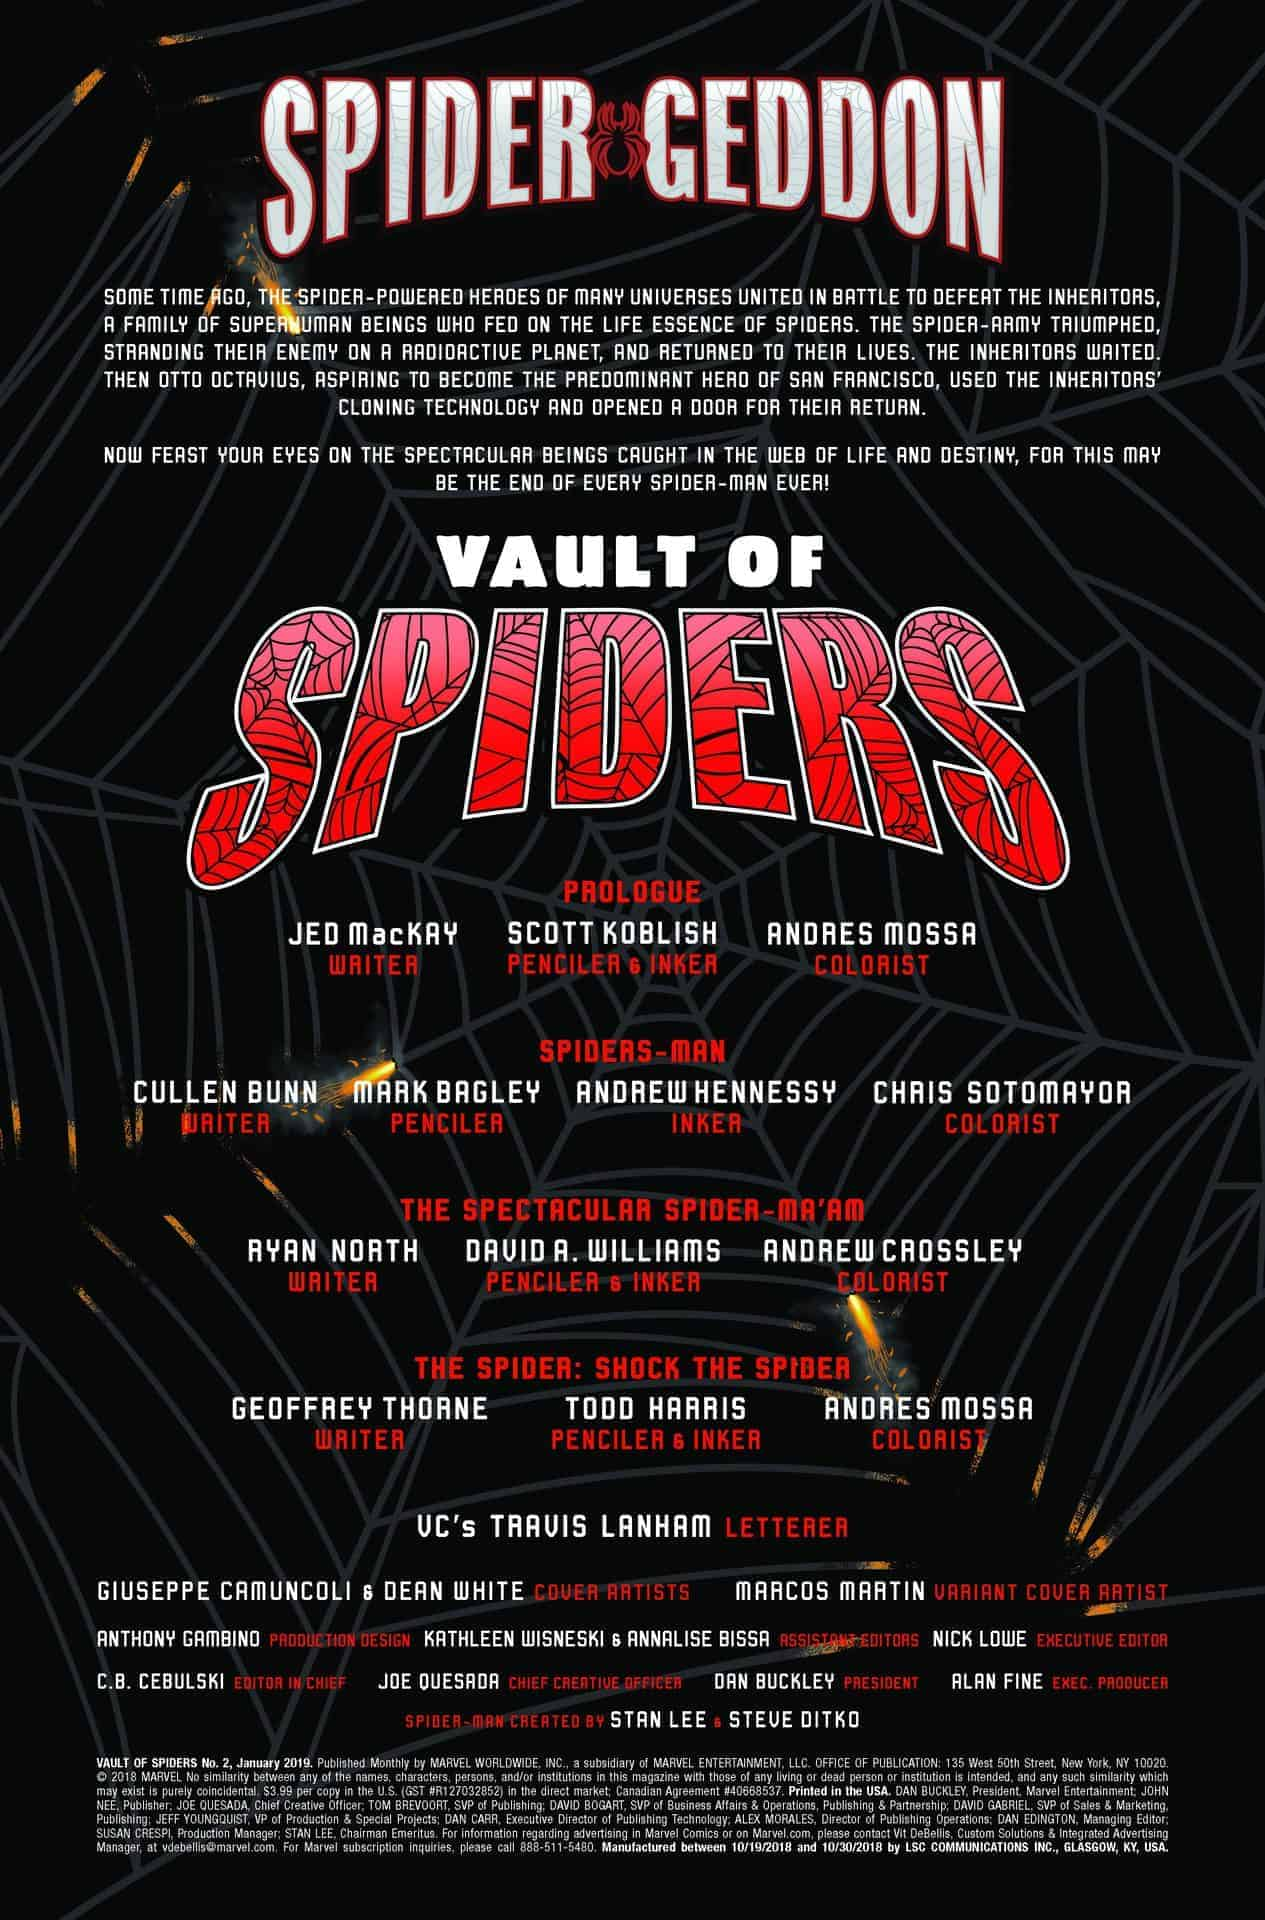 vault of spiders #2